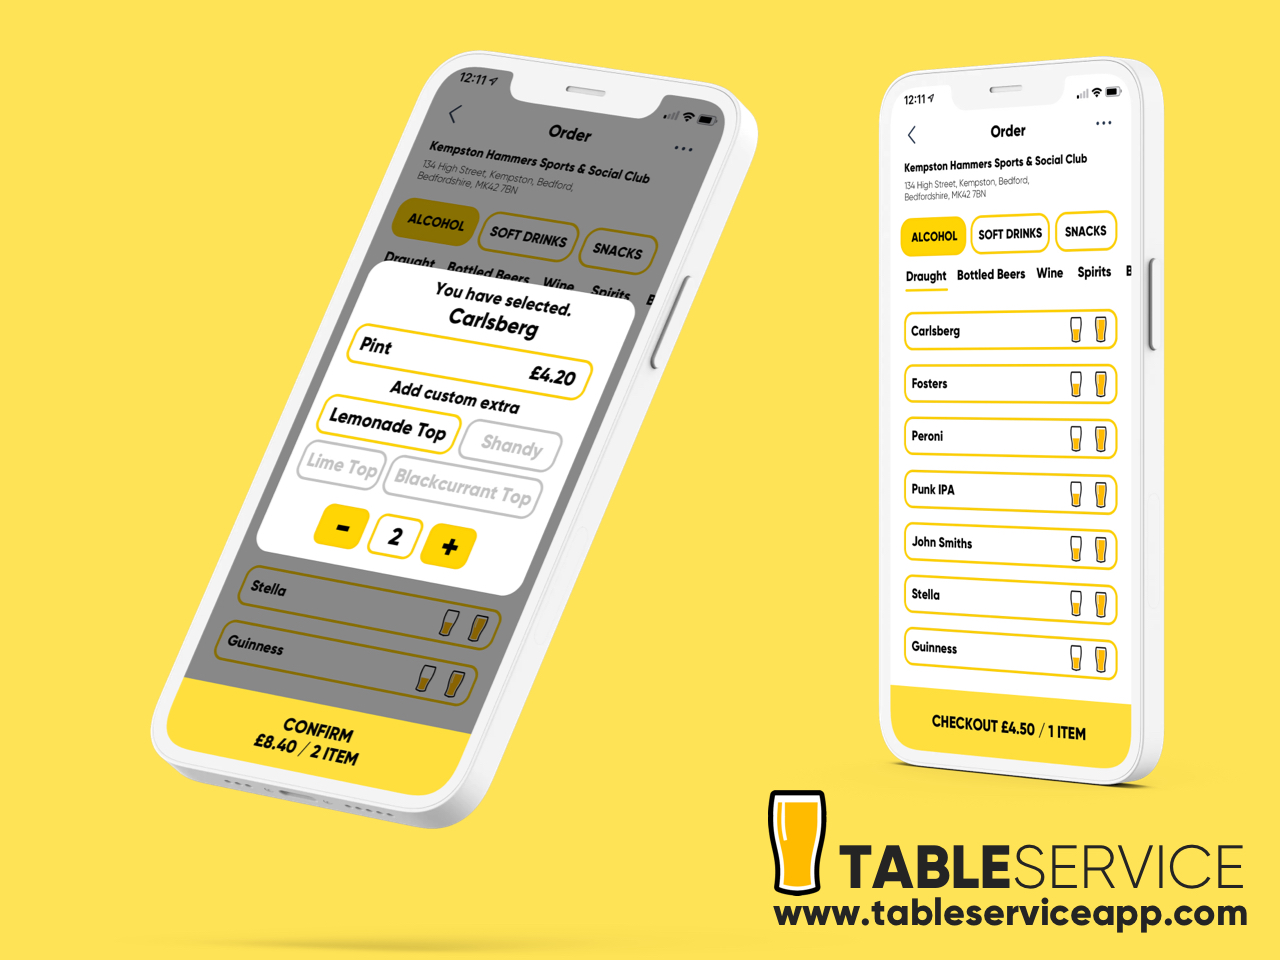 Leading App Developer Takes On Table Service Challenge